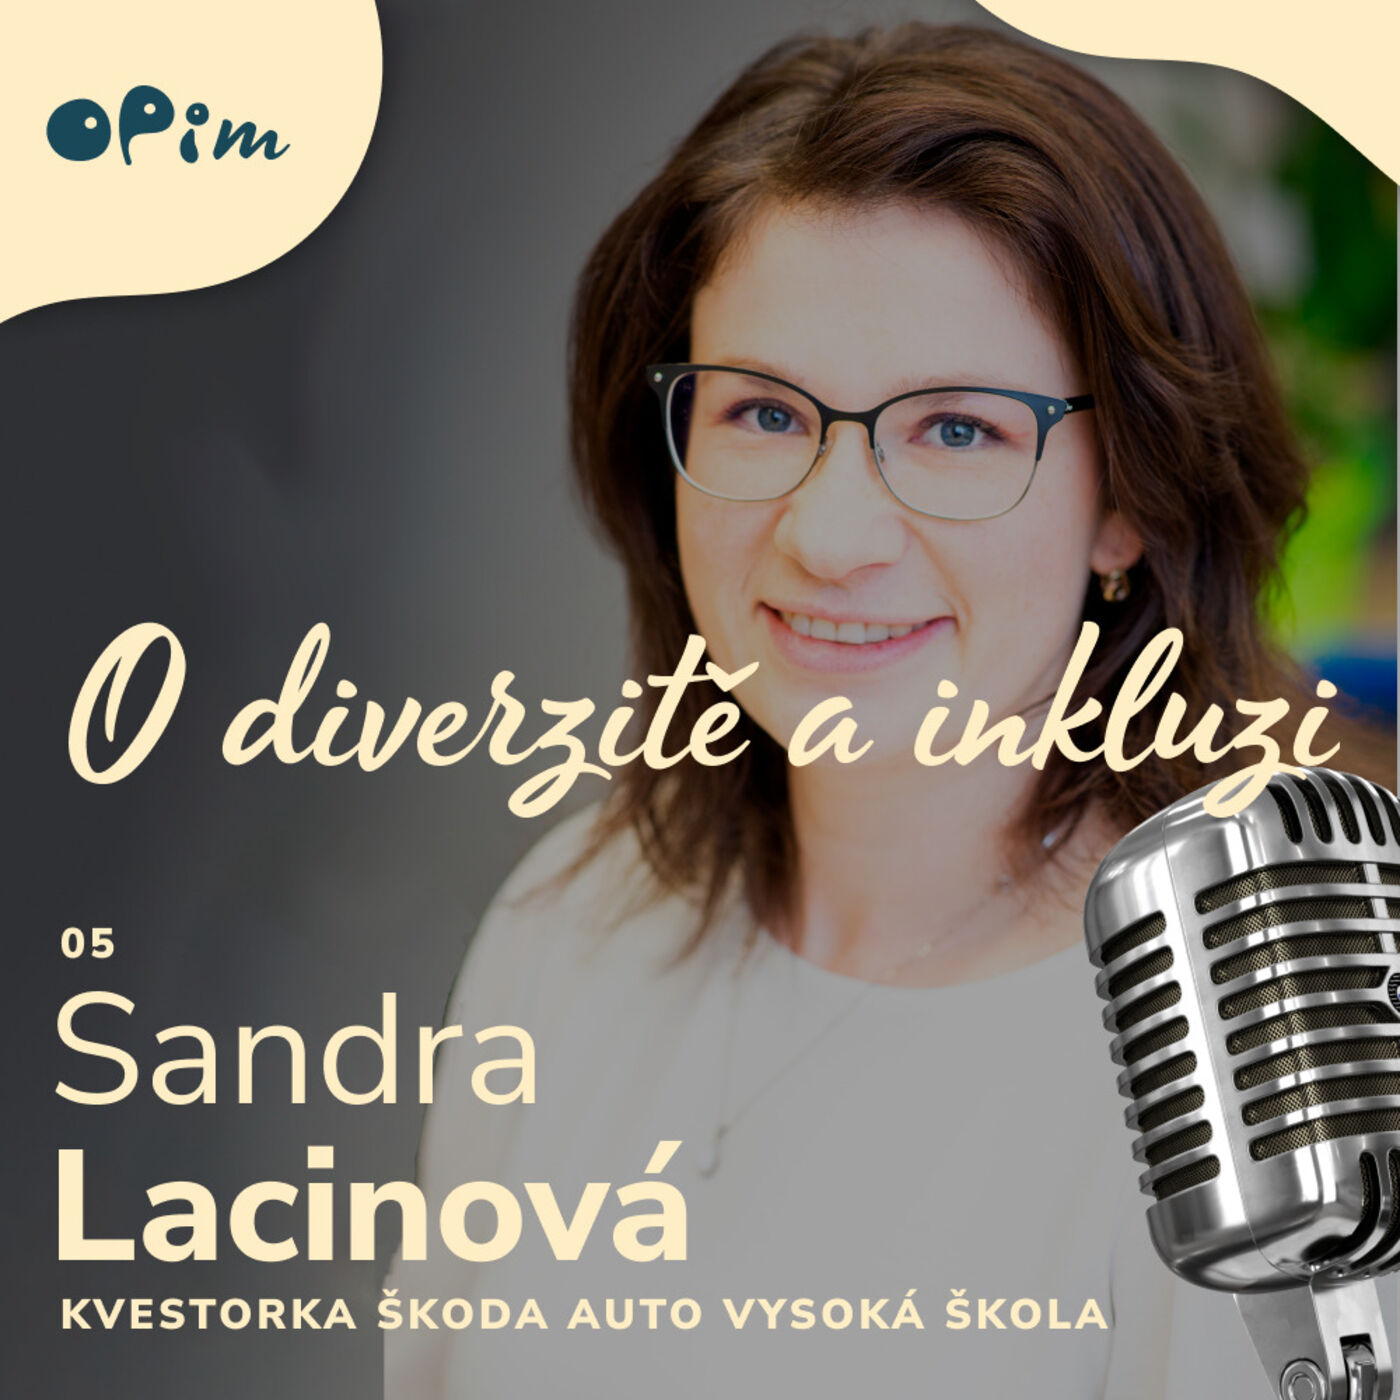 05 Eng: Sandra Lacinova: also academic sector should care about inclusion and equal opportunities for students.